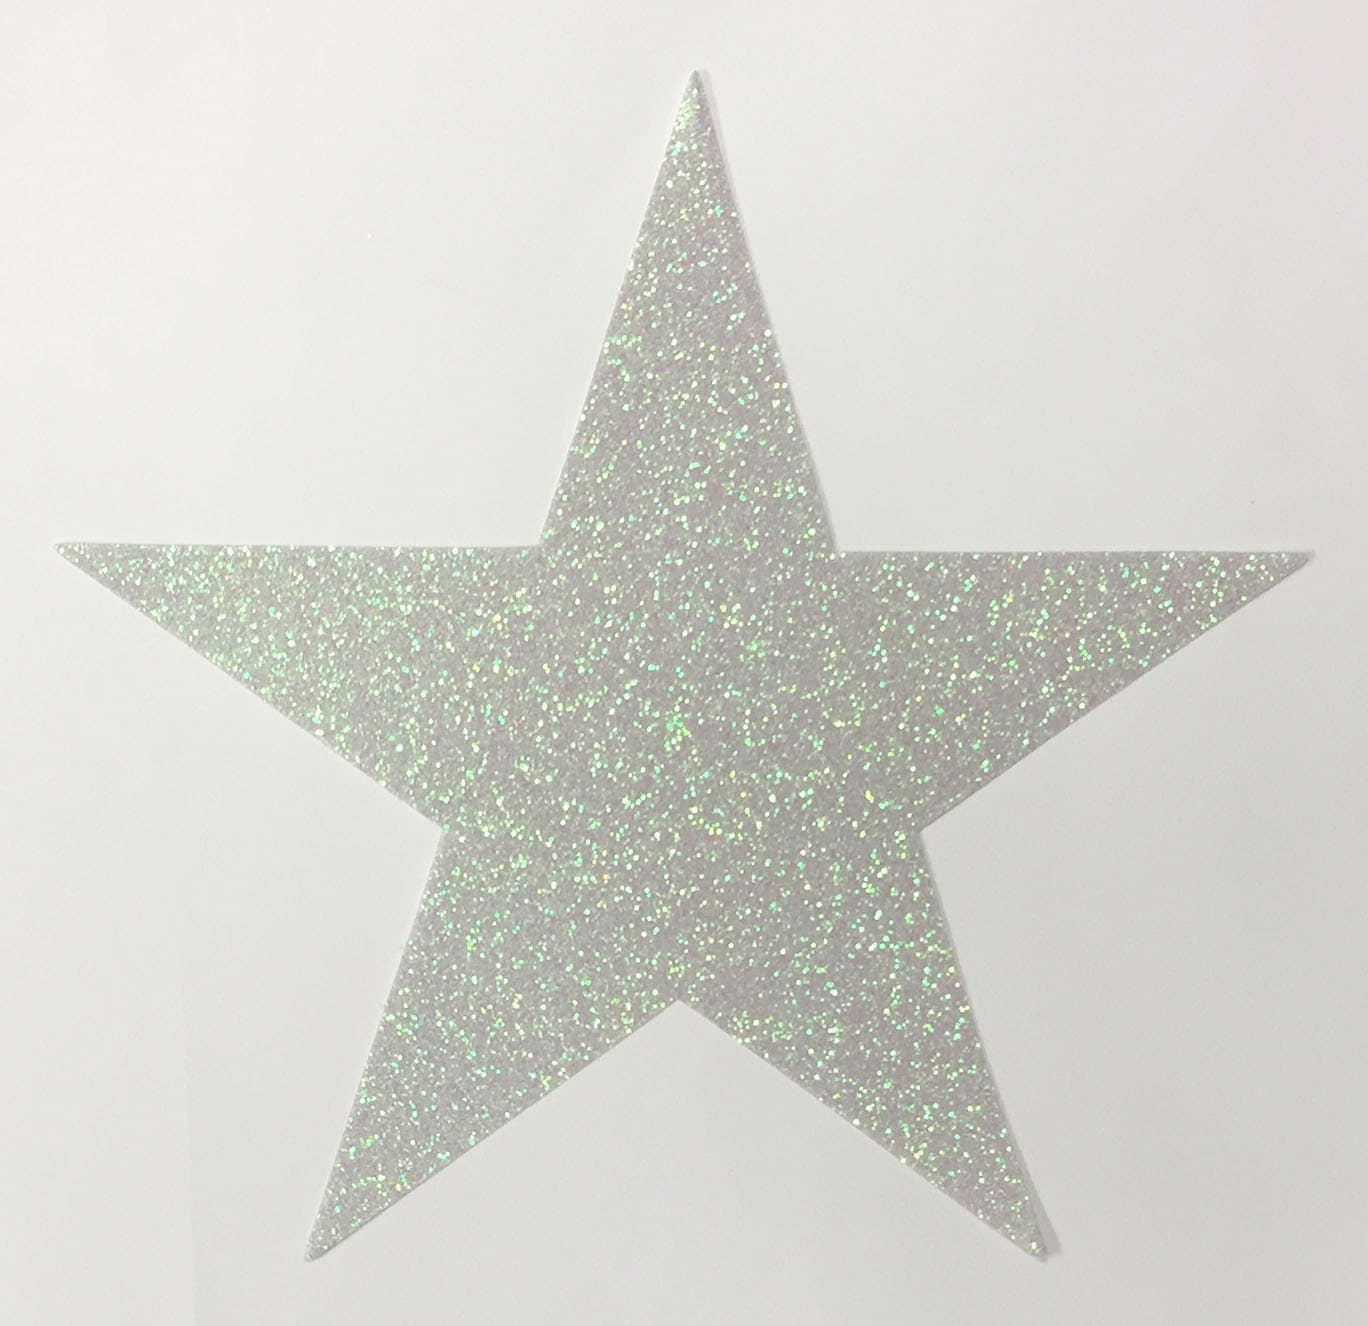 How to scrapbook with glitter - Giant Reflective Opal White Glitter Star Stickers 7 3 4 Inch Size 10 Stars Scrapbook Party Decor 00413 Free Usa Shipping